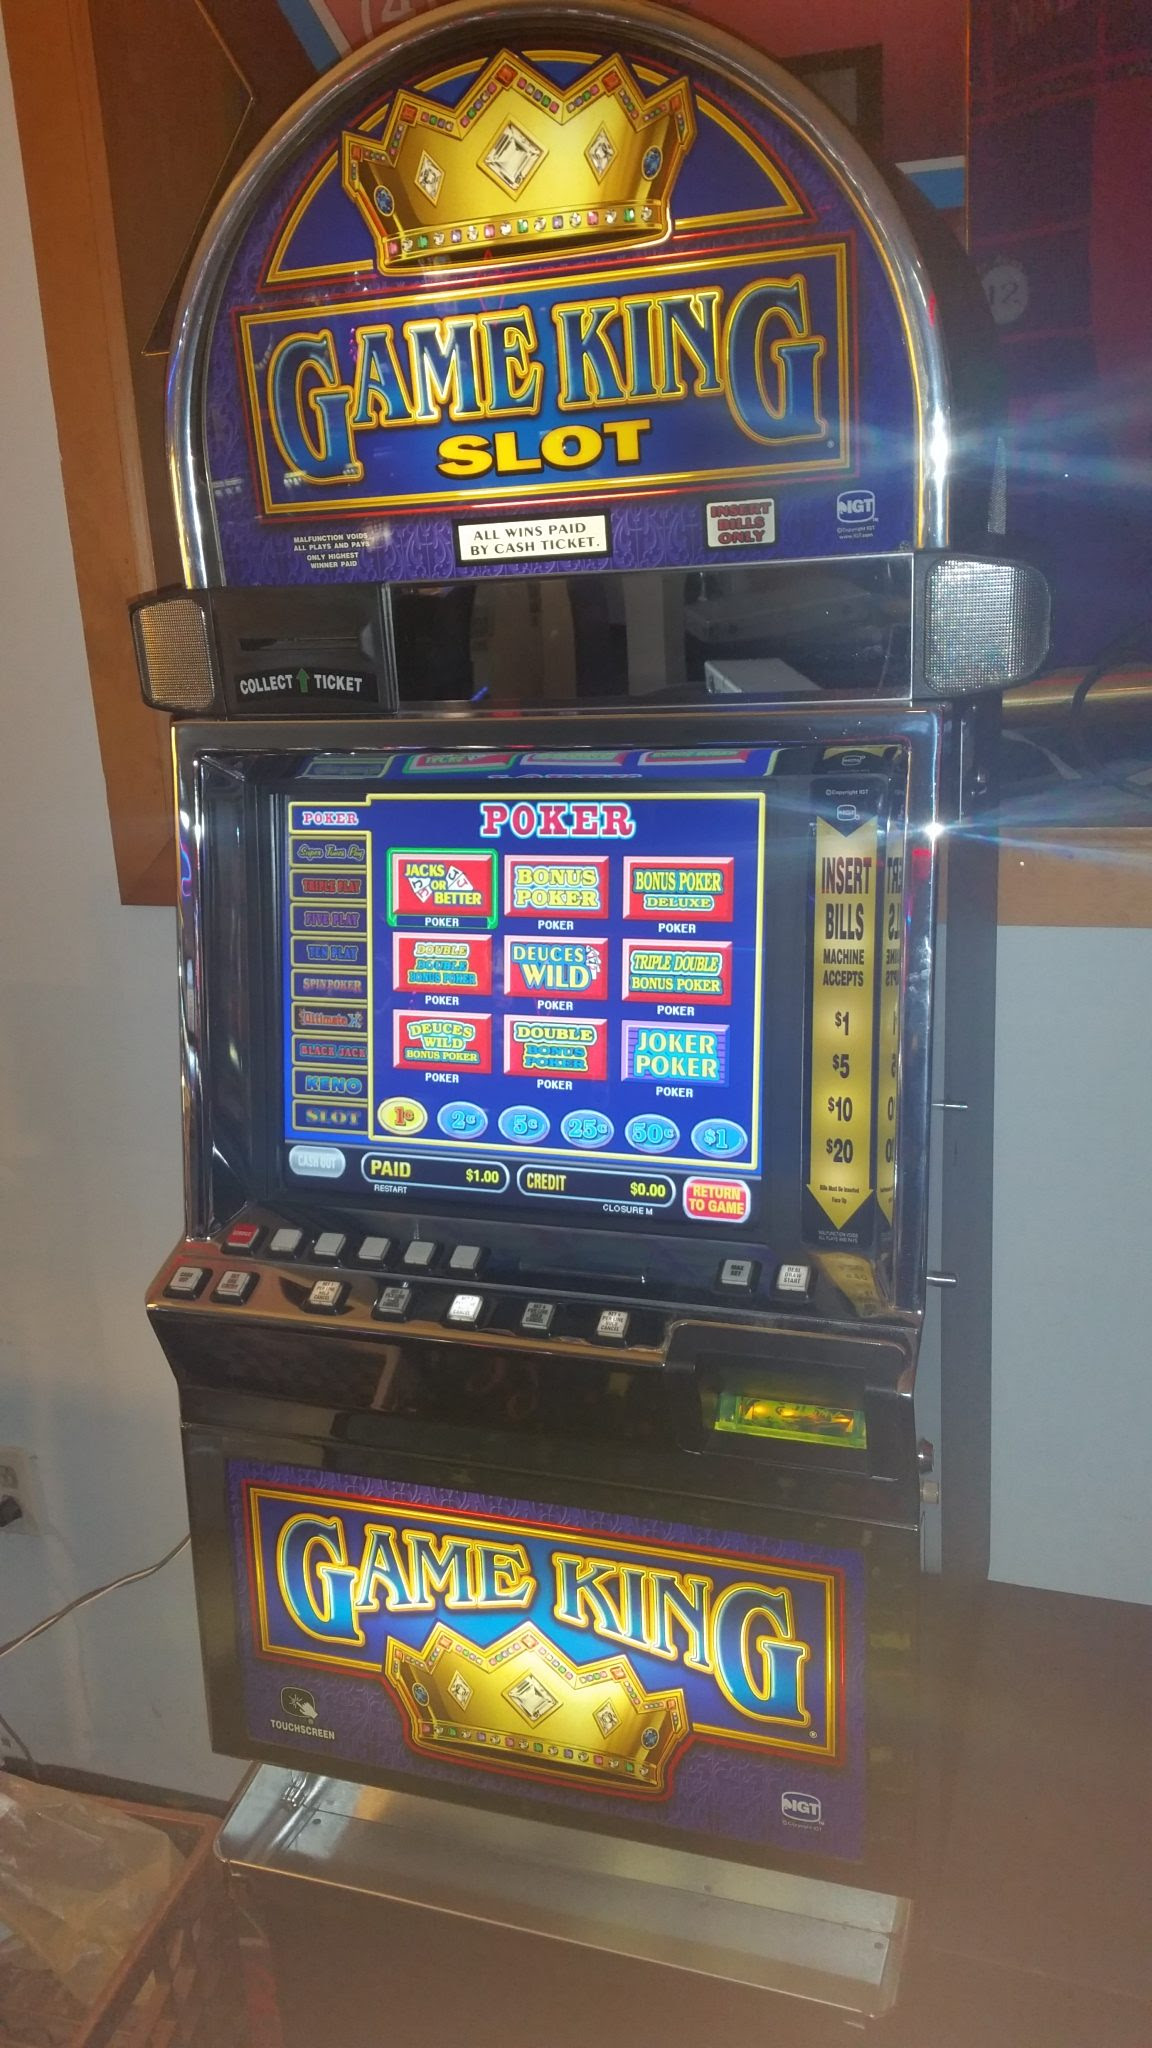 USED SLOT MACHINES.Used Slot Machines, refurbished slots and video poker machines.Spring Cleaning Were Offering IGT 17 Inch Gameking 31 Game $ or Video slot Machine.Best Prices Out There.Lots Of Machines In Stock.All Slot Machines Come With A Year Warranty Life Time Tech Support.All Slot Machines Are Various Colors From Casino.